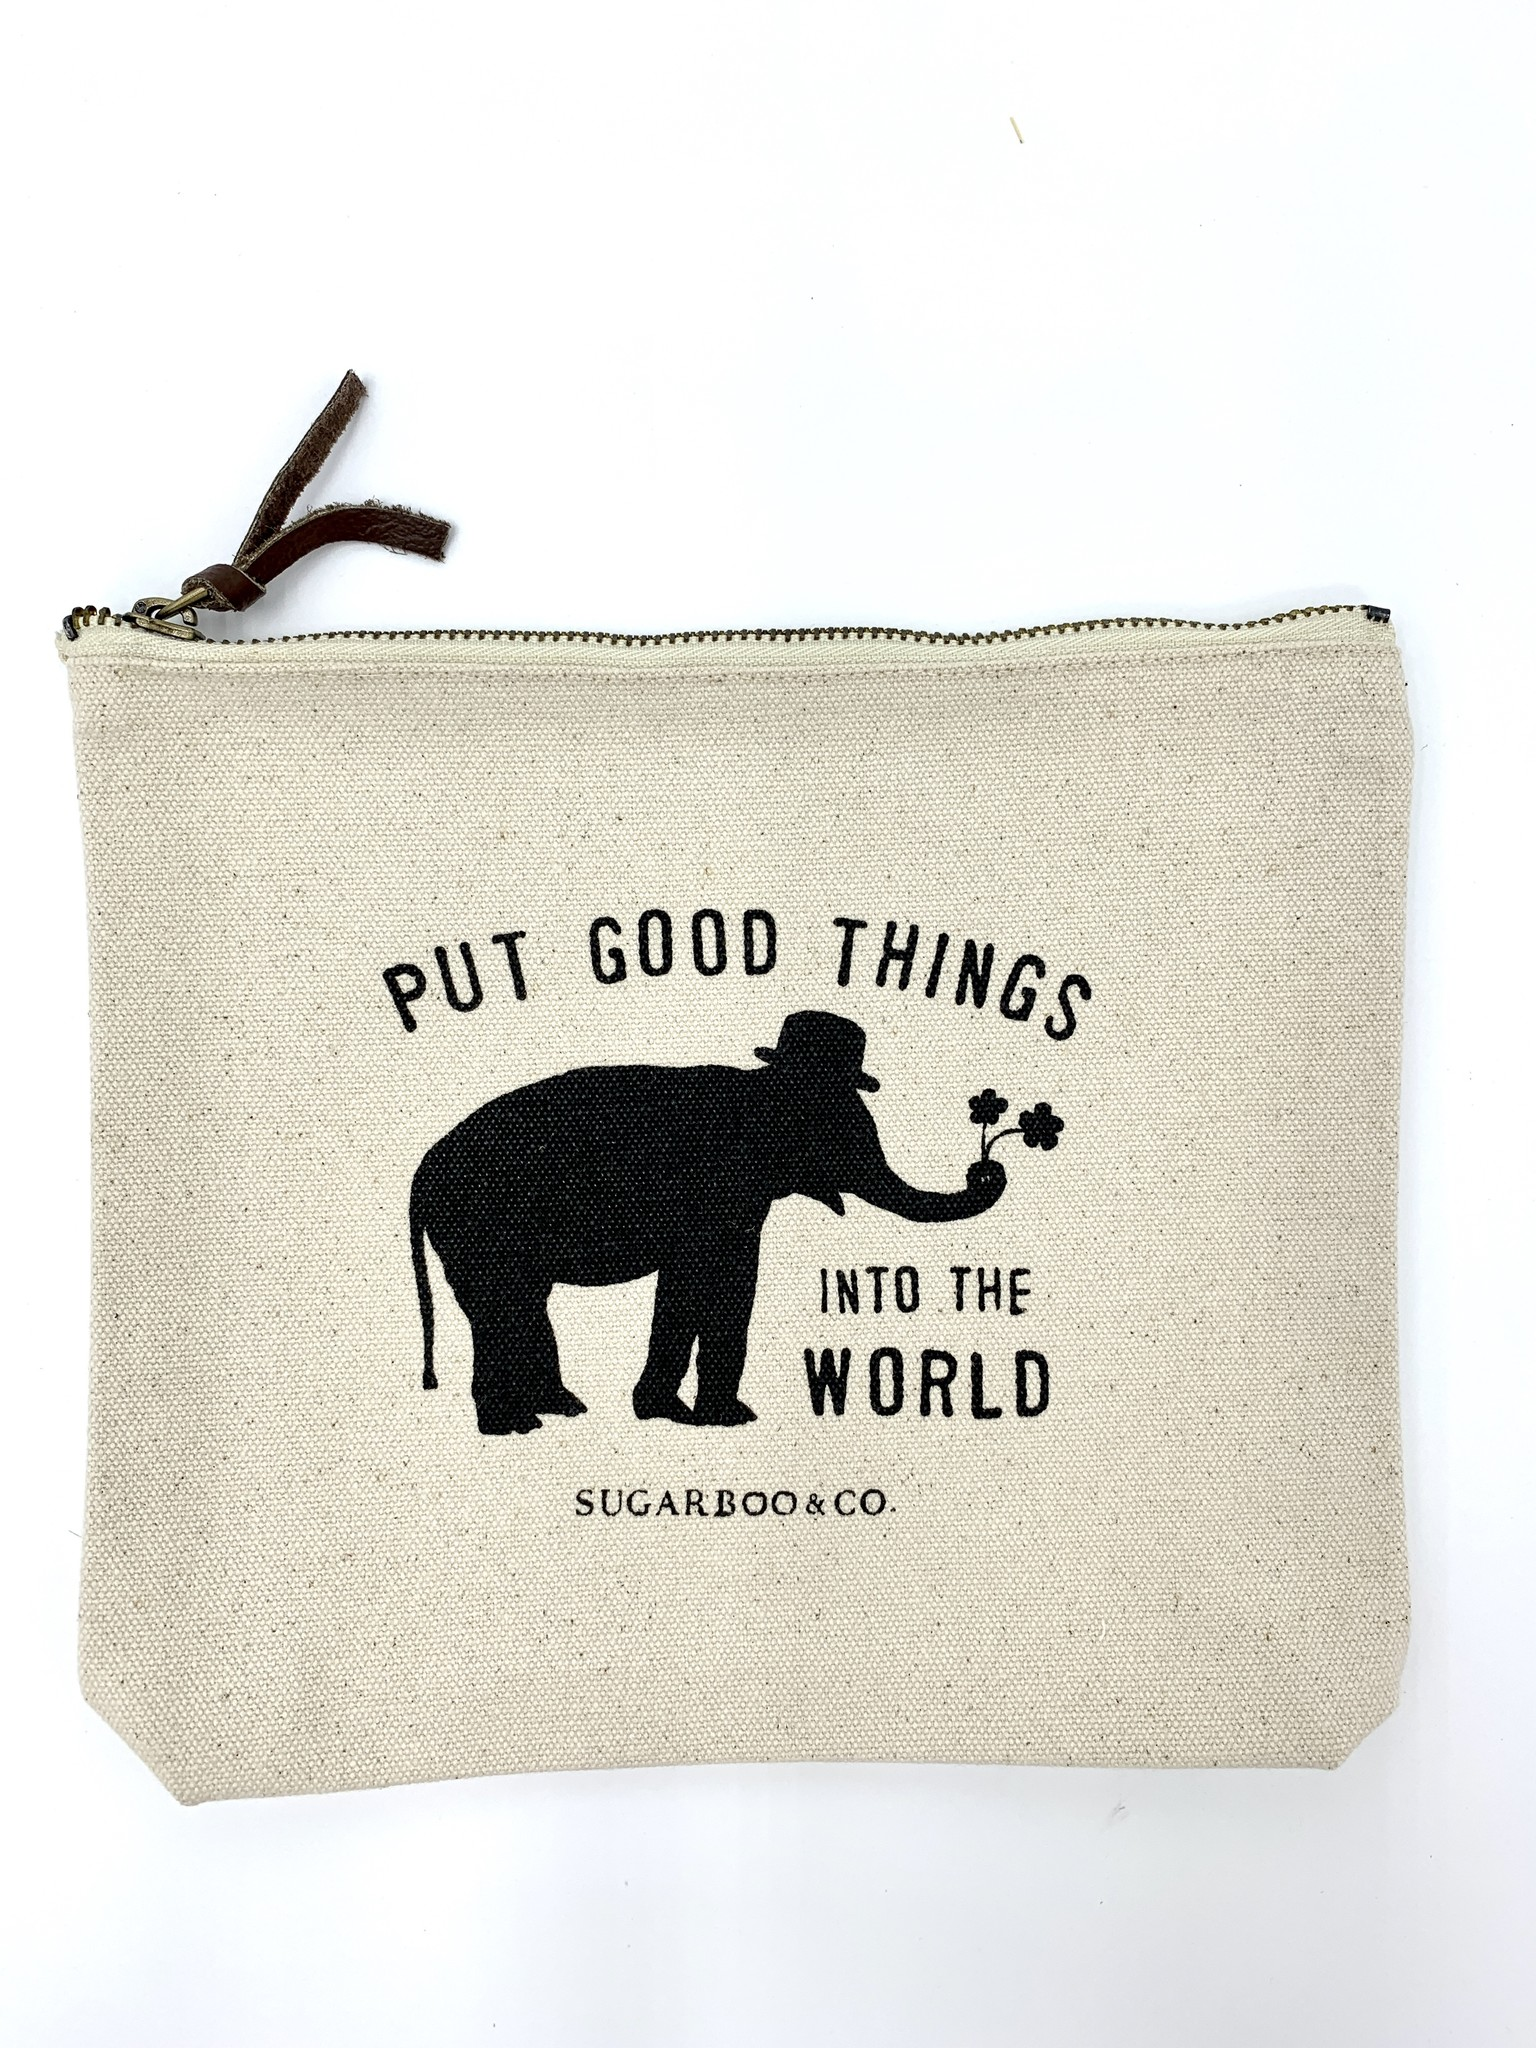 Sugarboo & Co. Sugarboo Canvas Zip Bag - Put Good Things Into The World